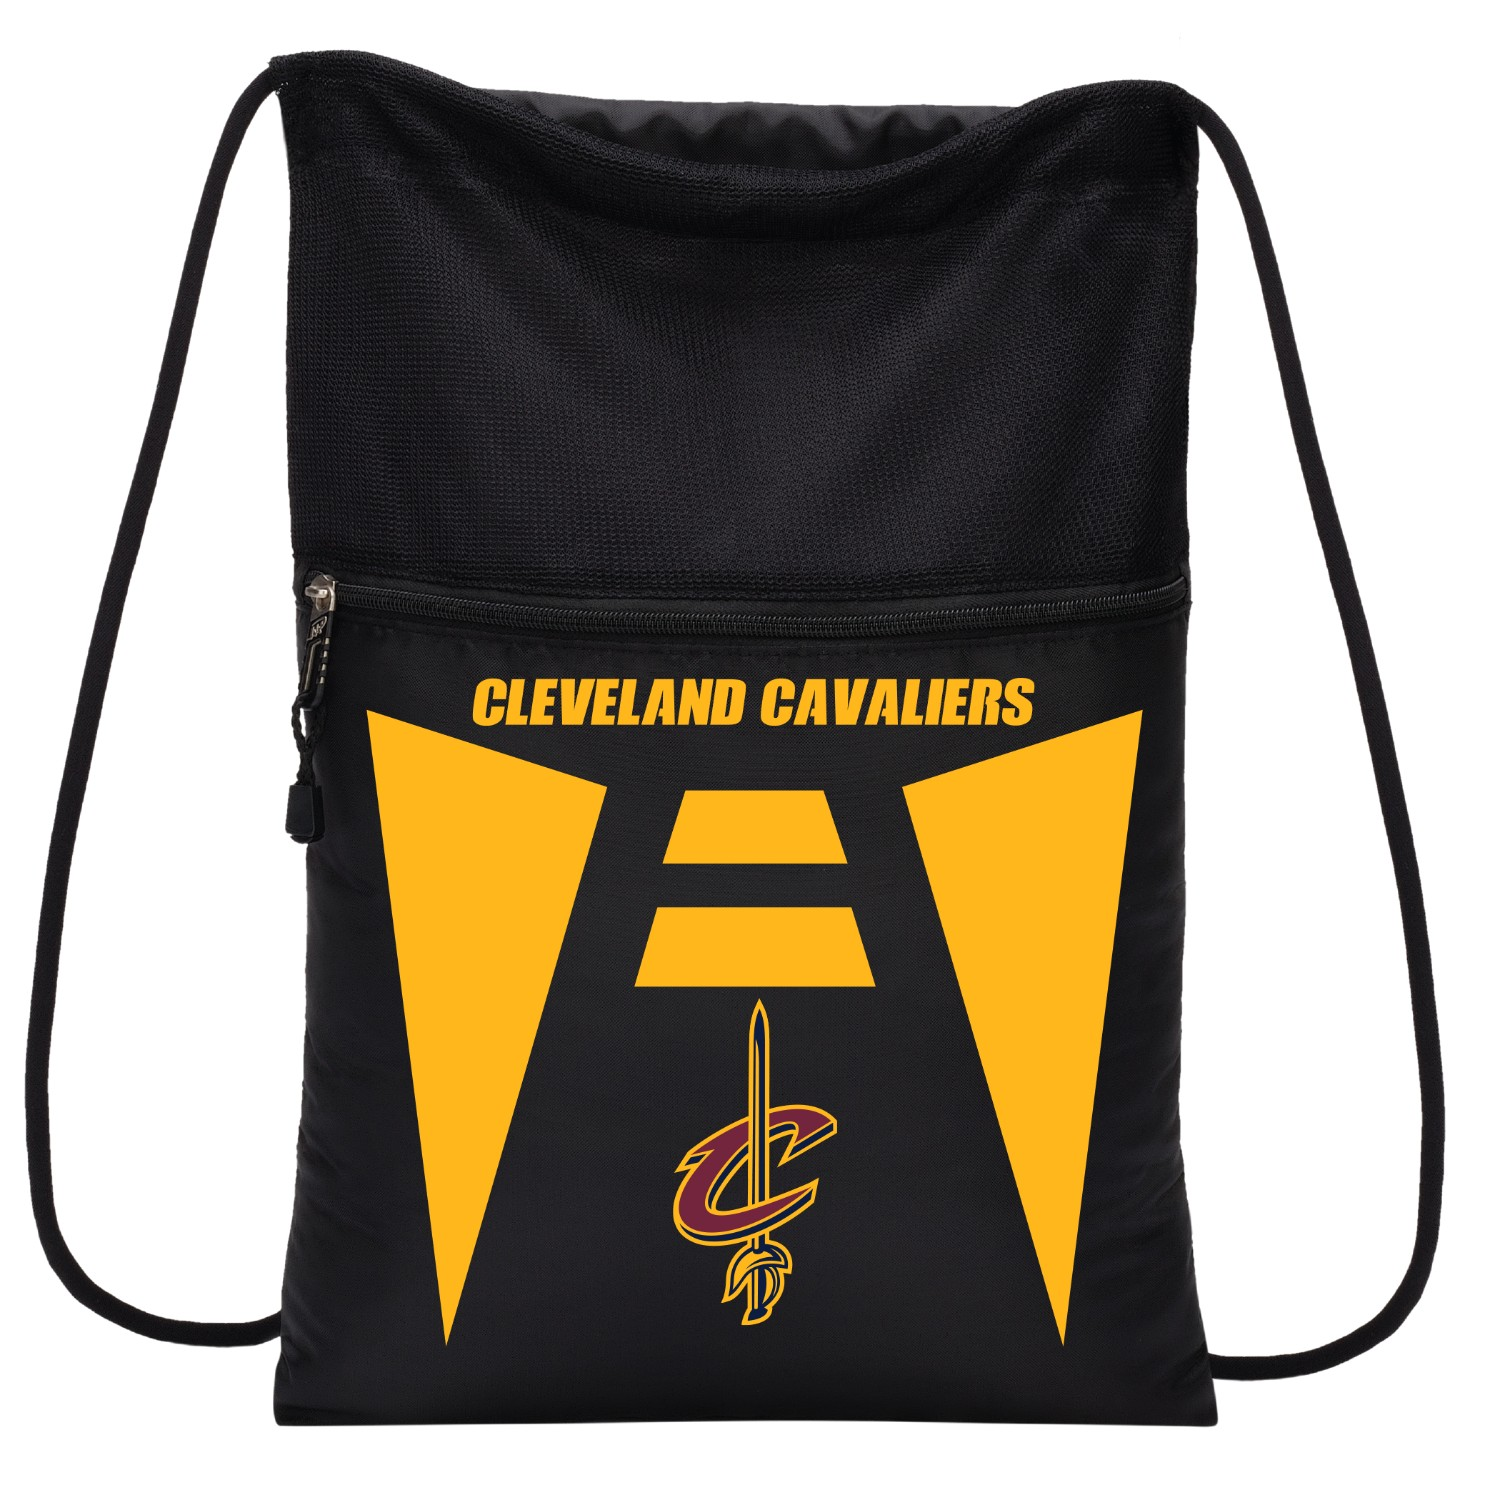 Cleveland Cavaliers Team Tech Backsack